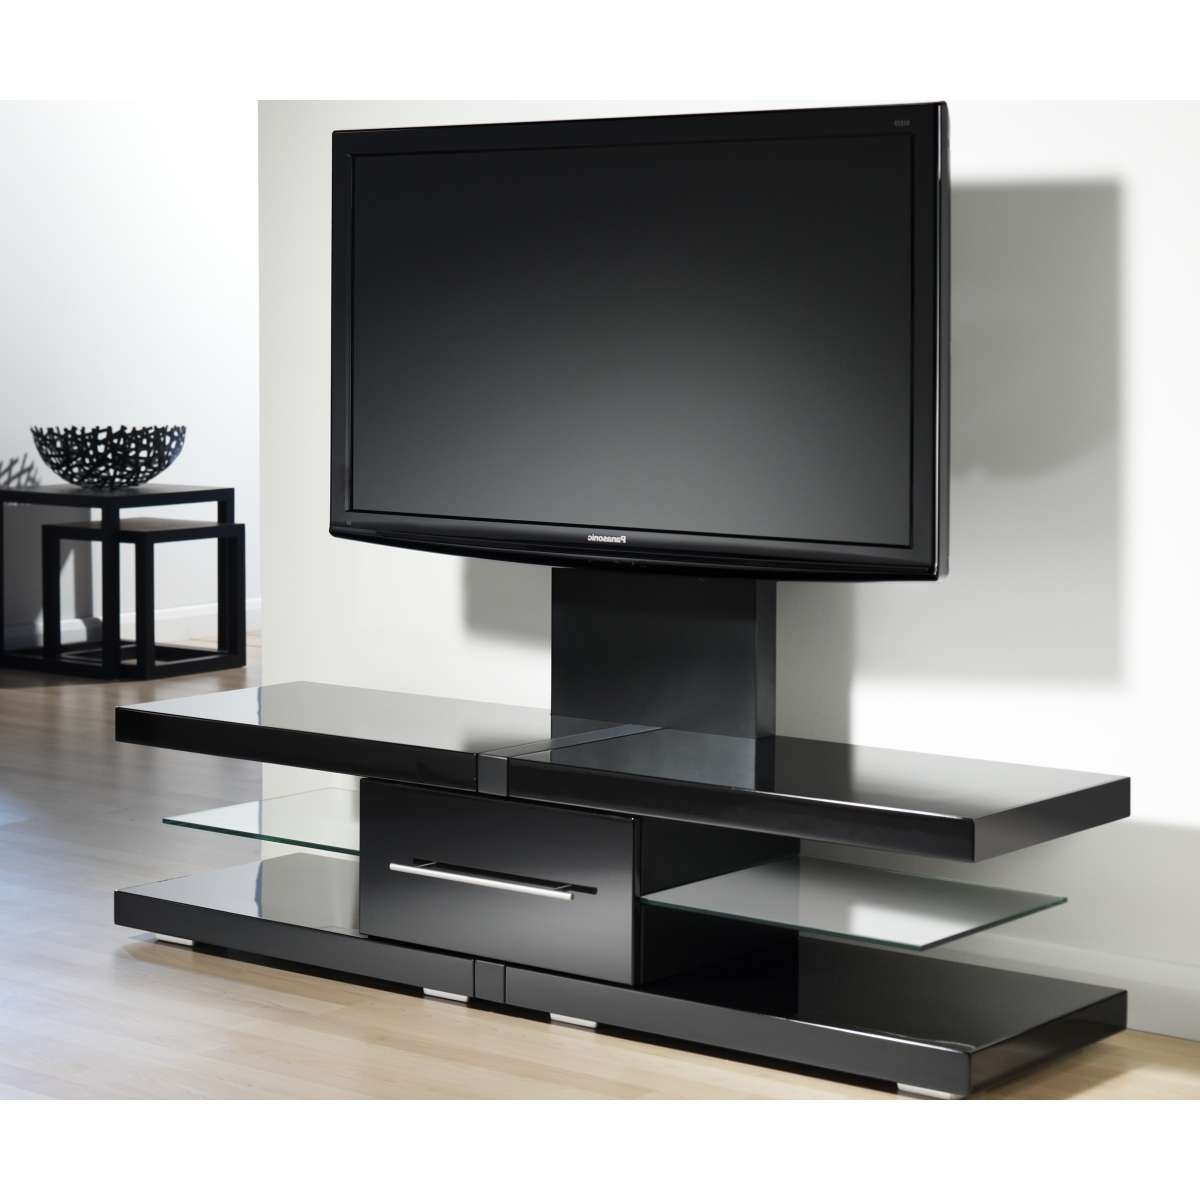 Modern Black Tone Wide Screen Tv Stand With Display Shelves And With Black Modern Tv Stands (View 13 of 15)